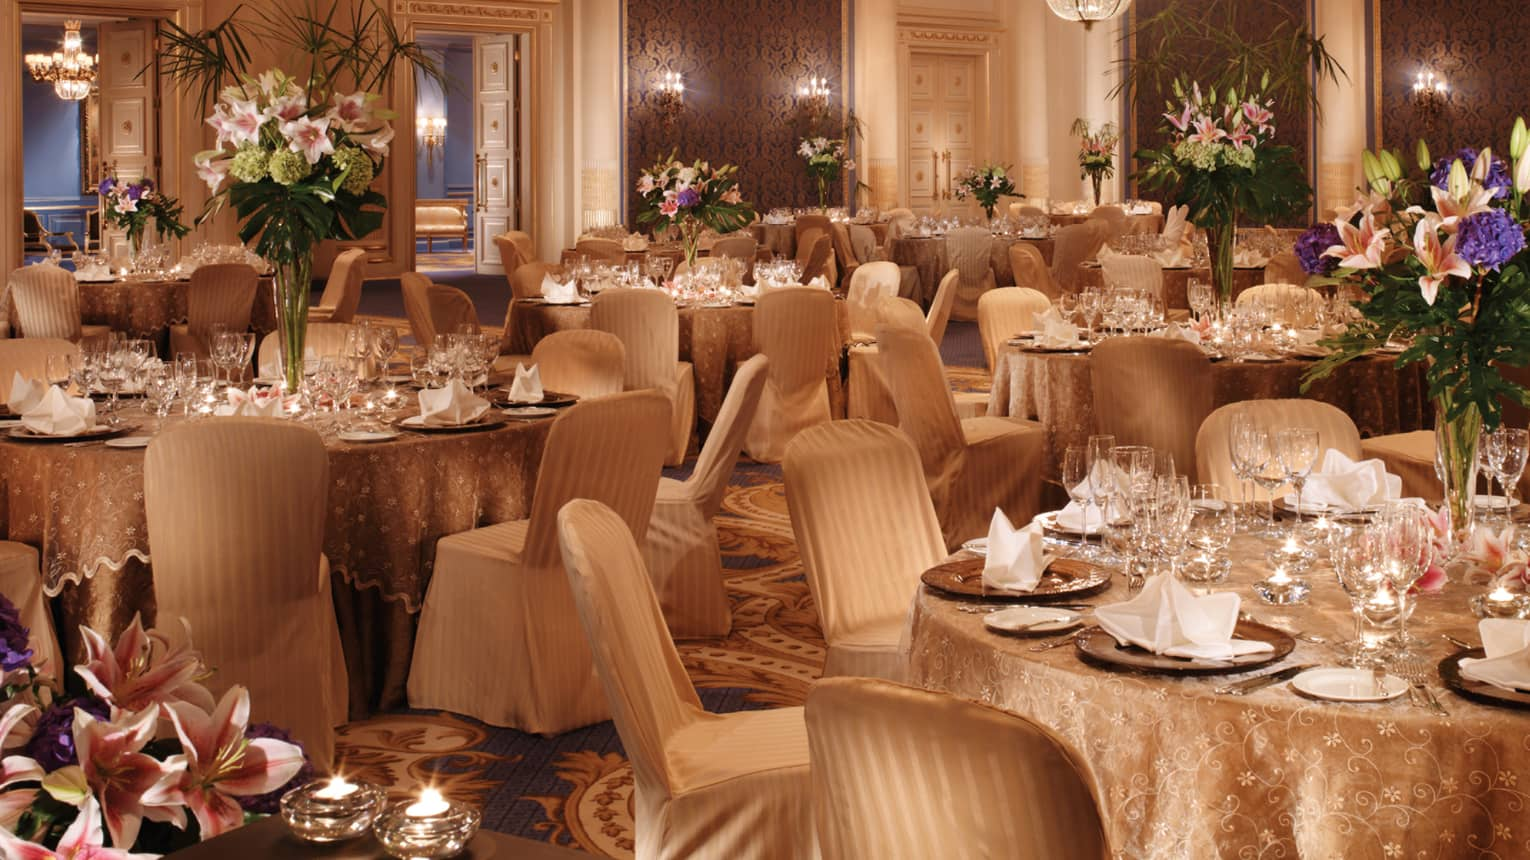 Elegantly set tables with gold tablecloths, flowers in ballroom with textured blue panels chandeliers